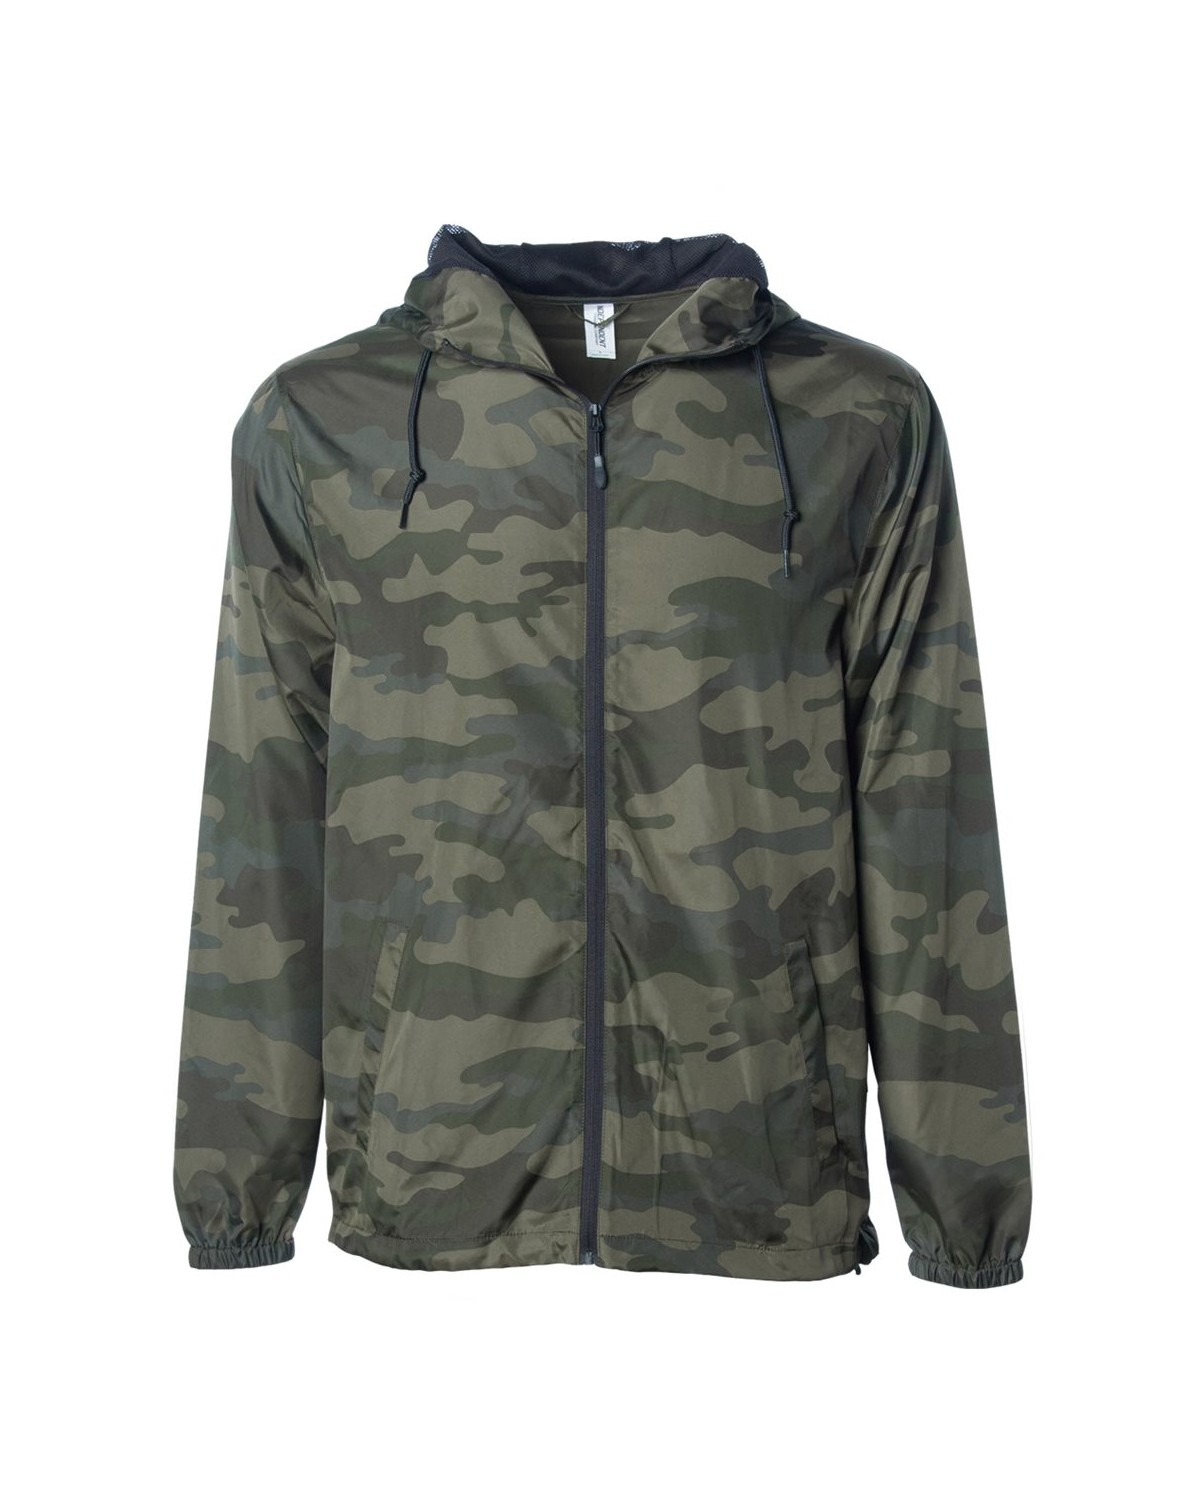 EXP54LWZ Independent Trading Company FOREST CAMO